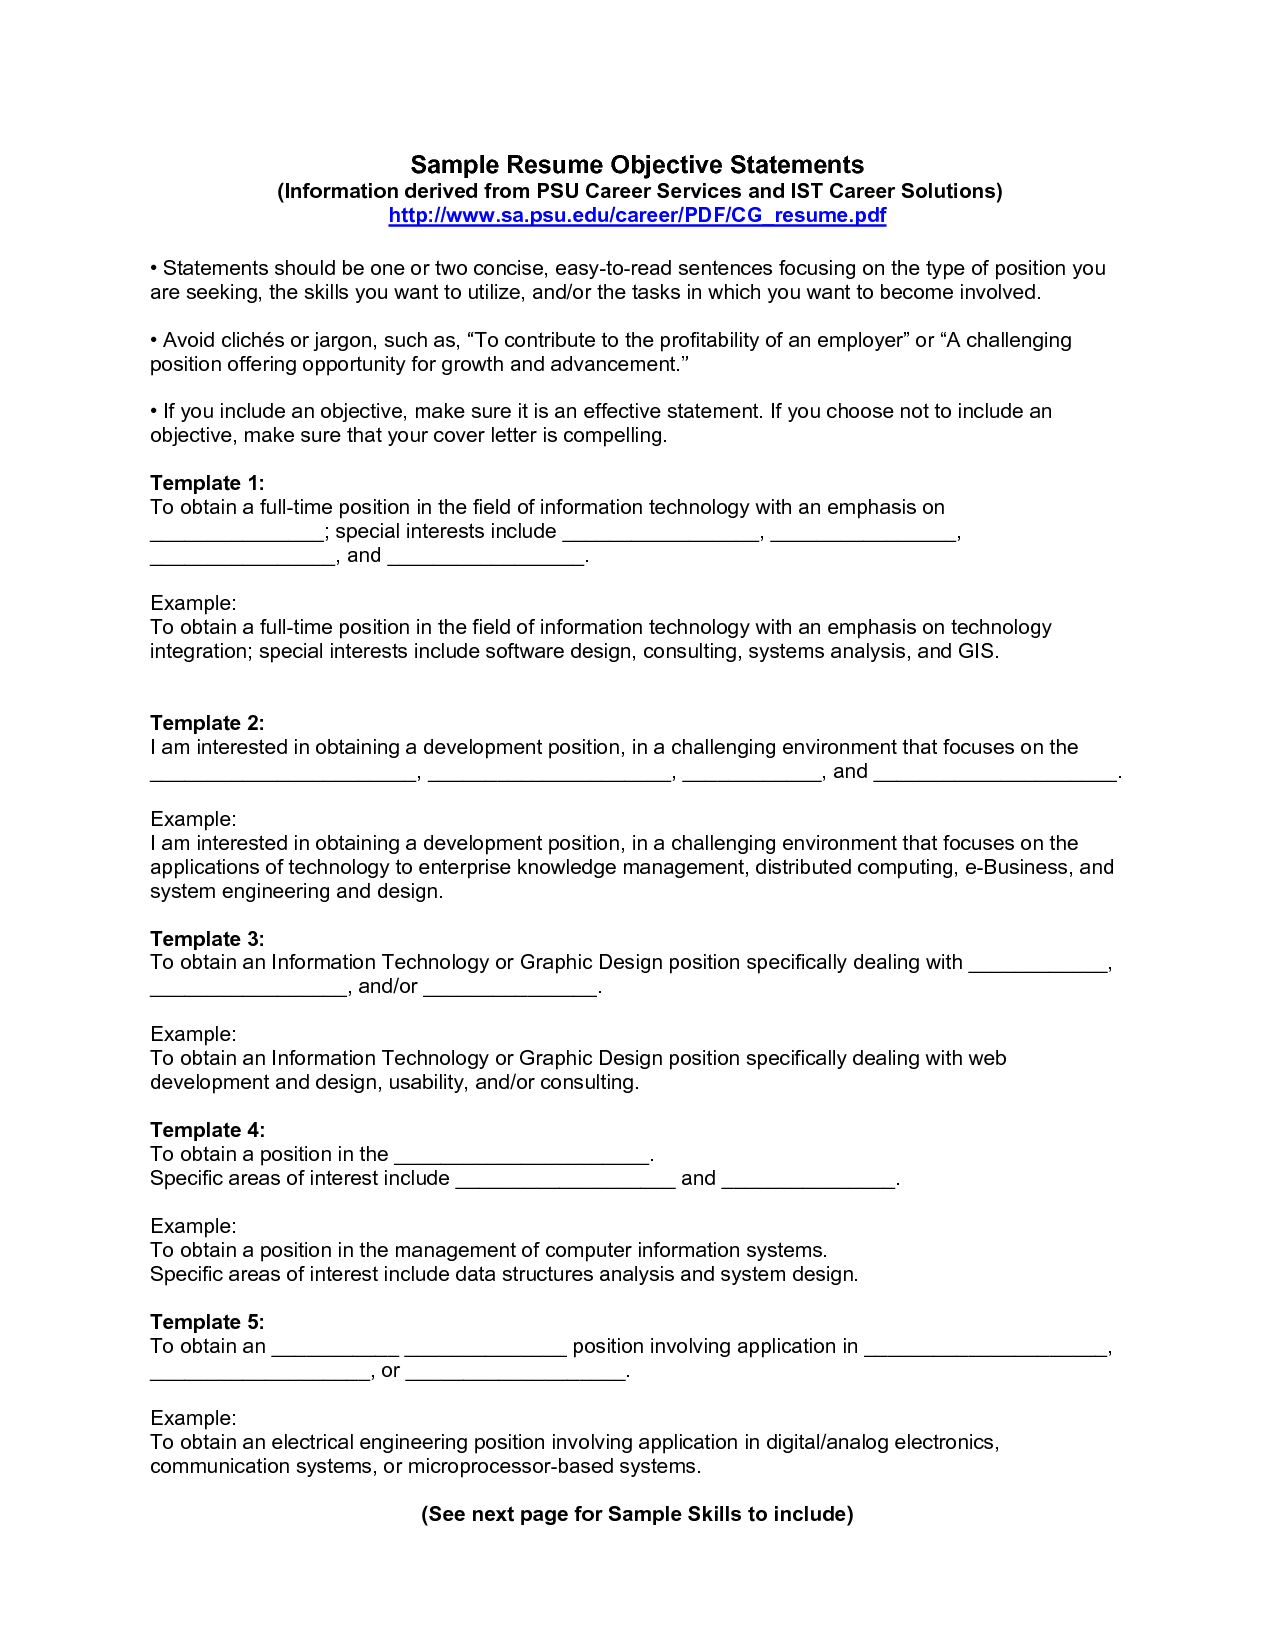 resume objective examples statement and resume career objective statement examples - Resume Objective Statements